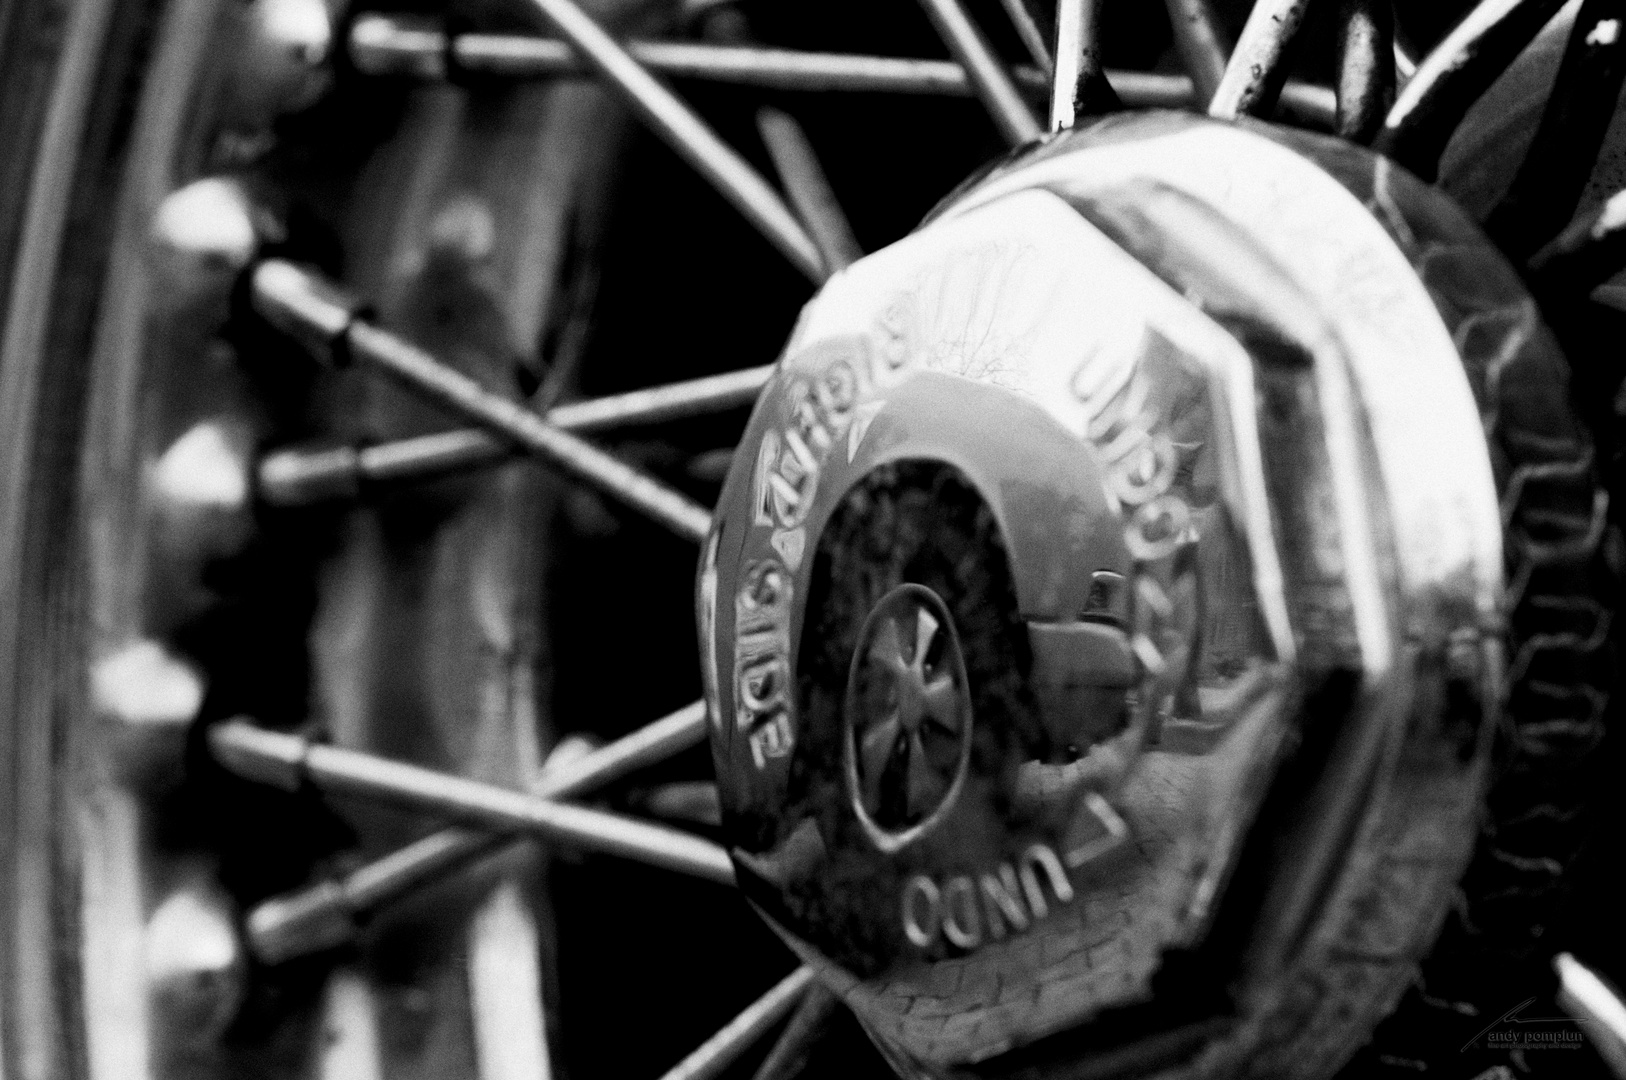 spokes&wheels